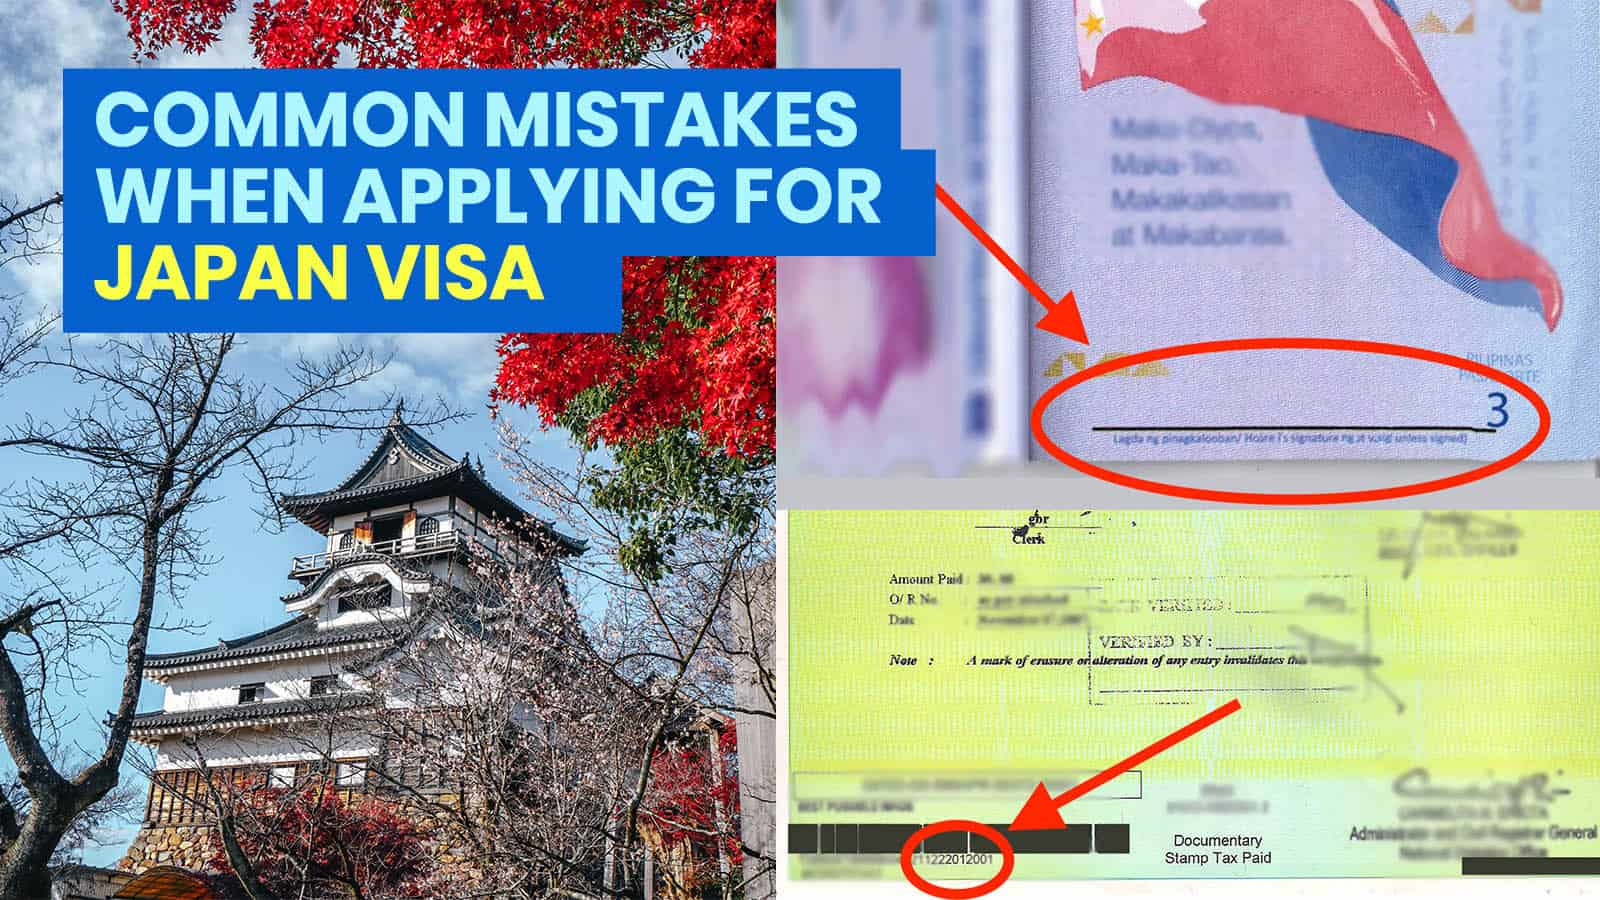 JAPAN VISA APPLICATION: 12 COMMON MISTAKES TO AVOID